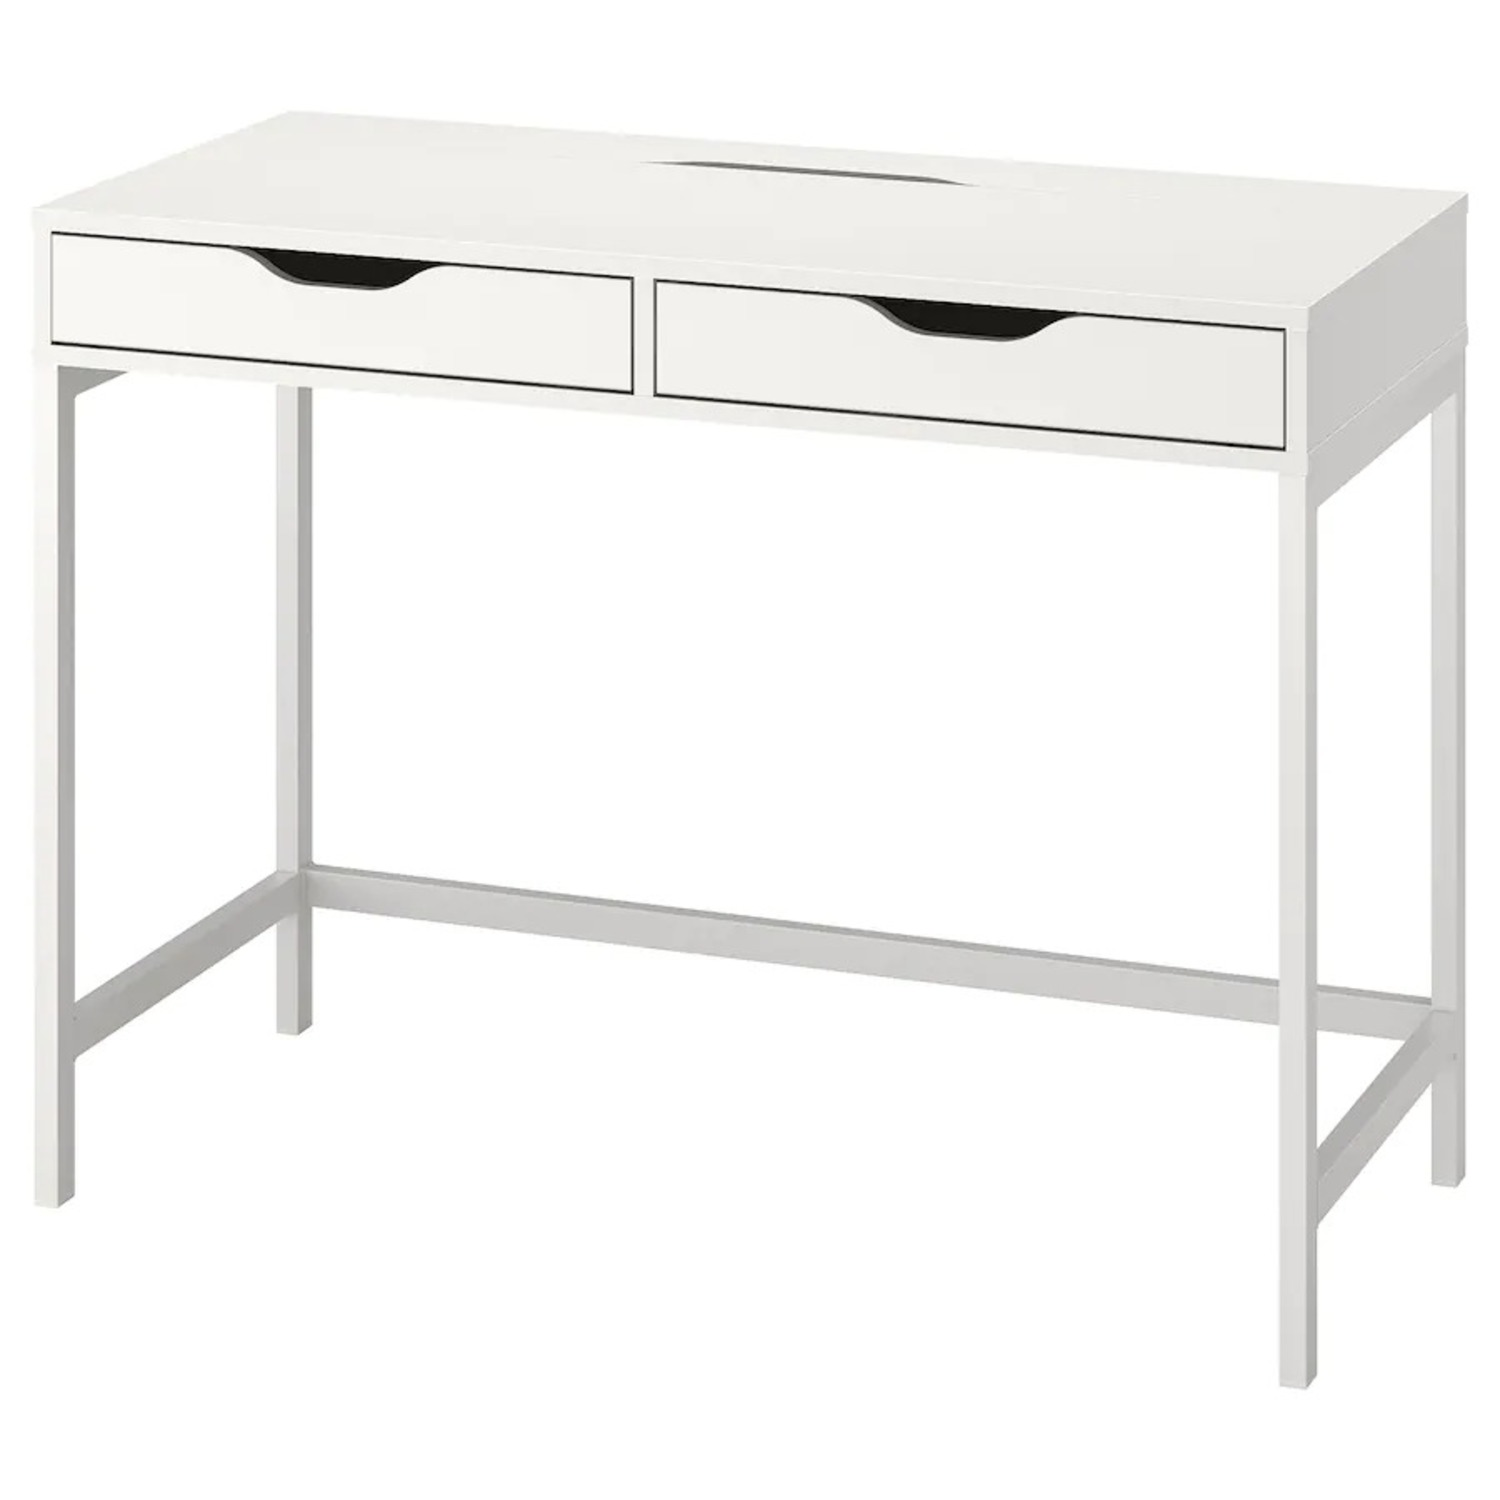 IKEA Alex Desk with Drawers - image-1